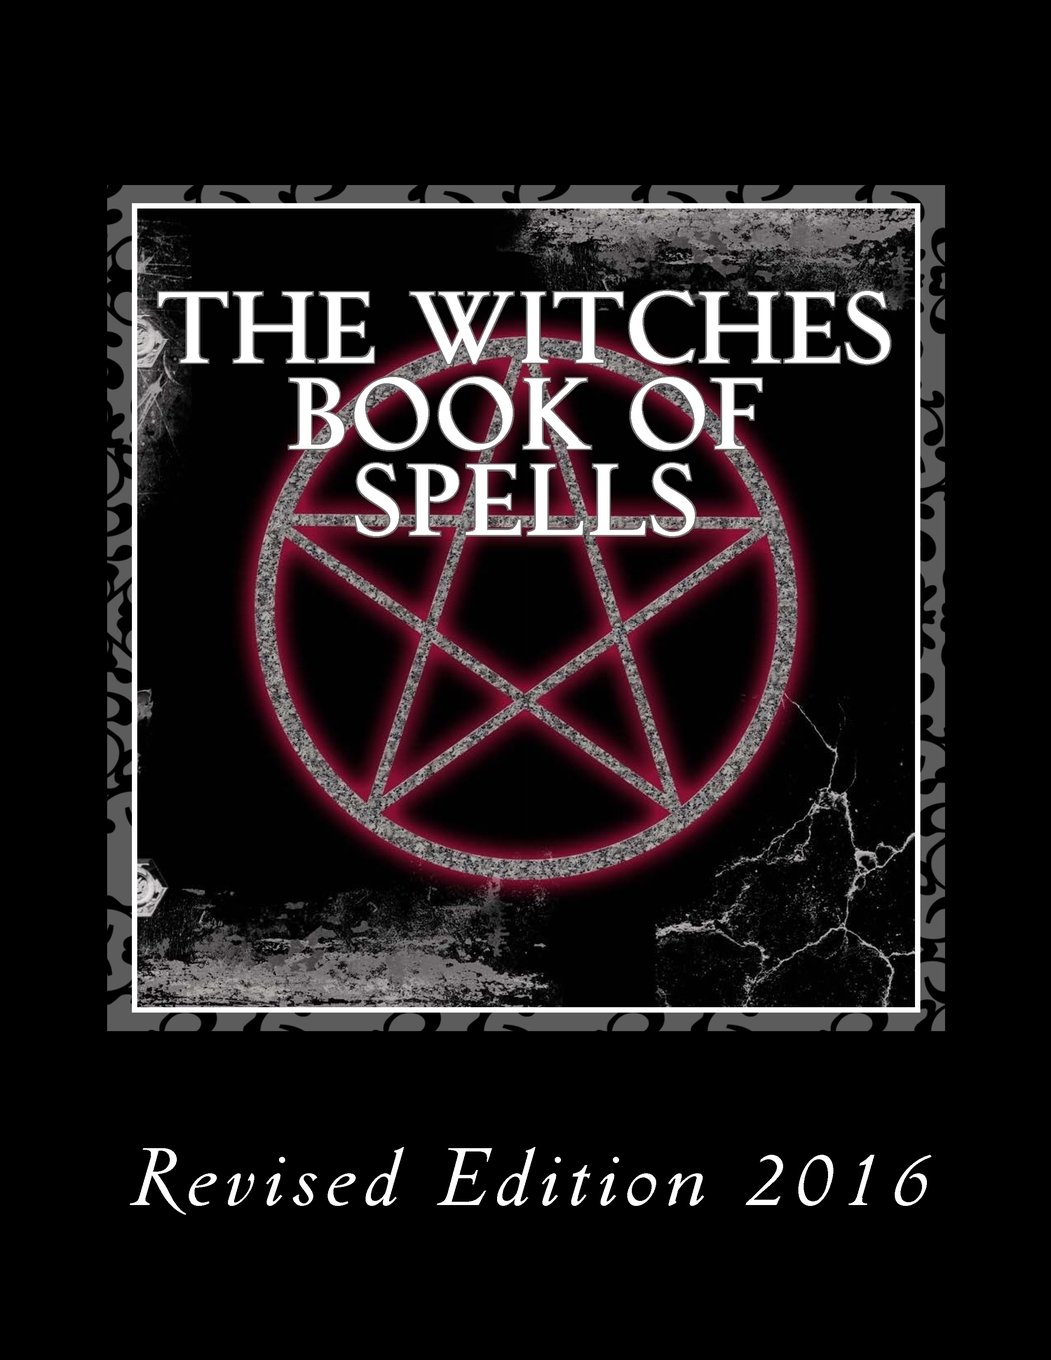 The witches book of spells roc marten 9781463517328 amazon the witches book of spells roc marten 9781463517328 amazon books biocorpaavc Choice Image